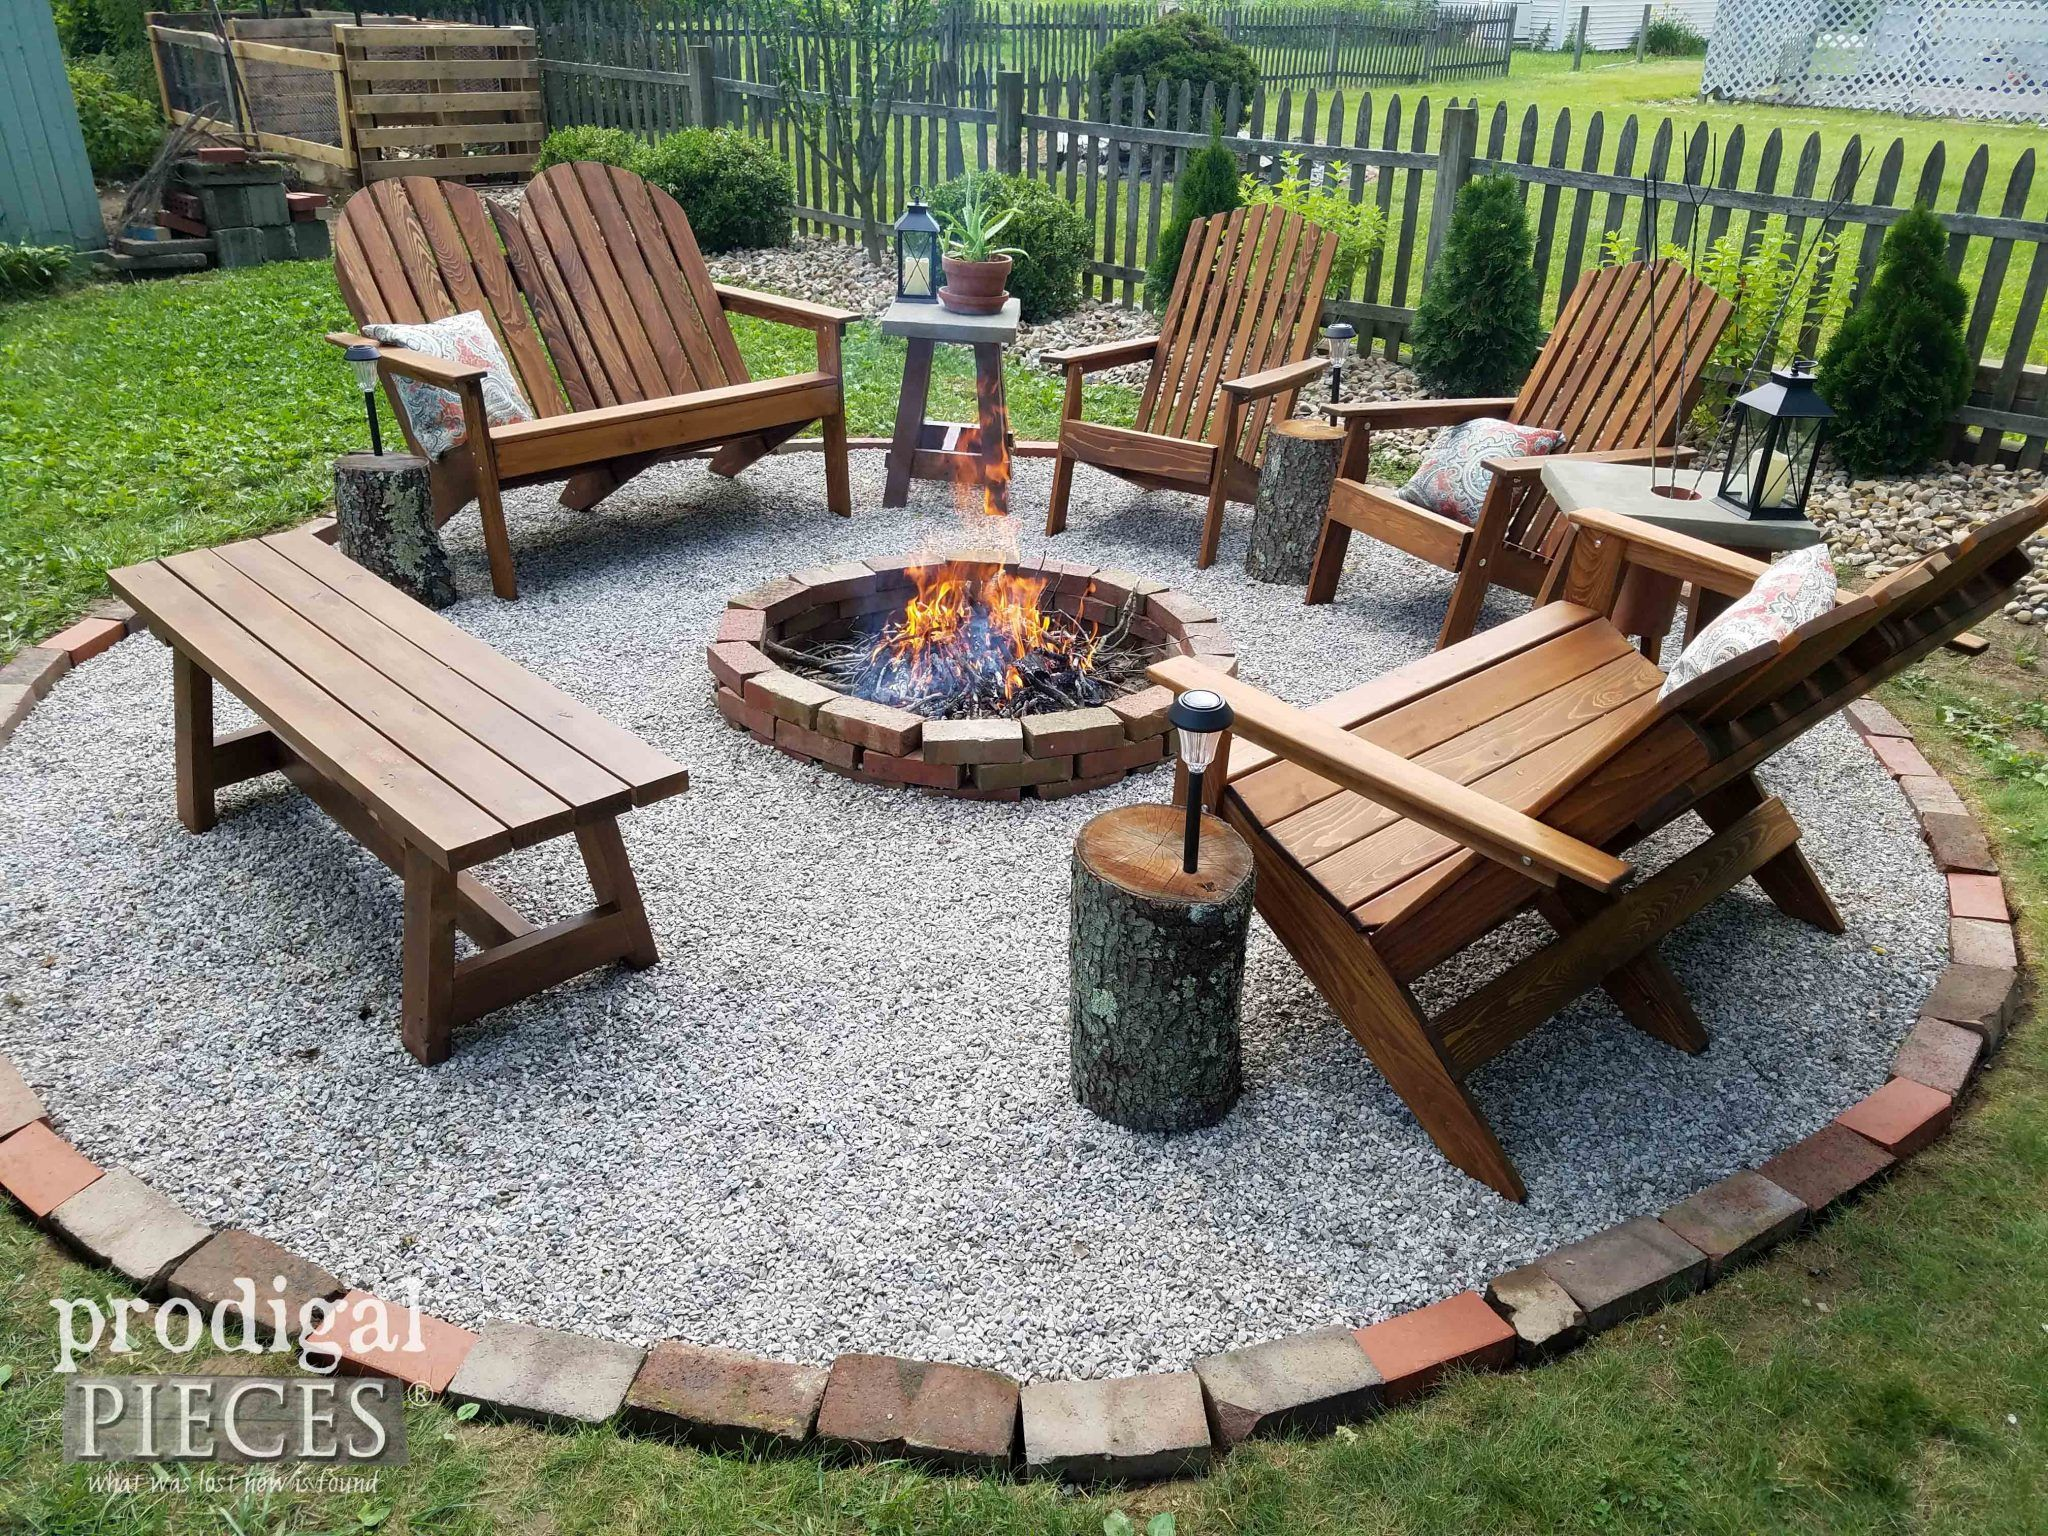 Diy fire pit backyard budget decor diy fire pit for Buy outdoor fire pit